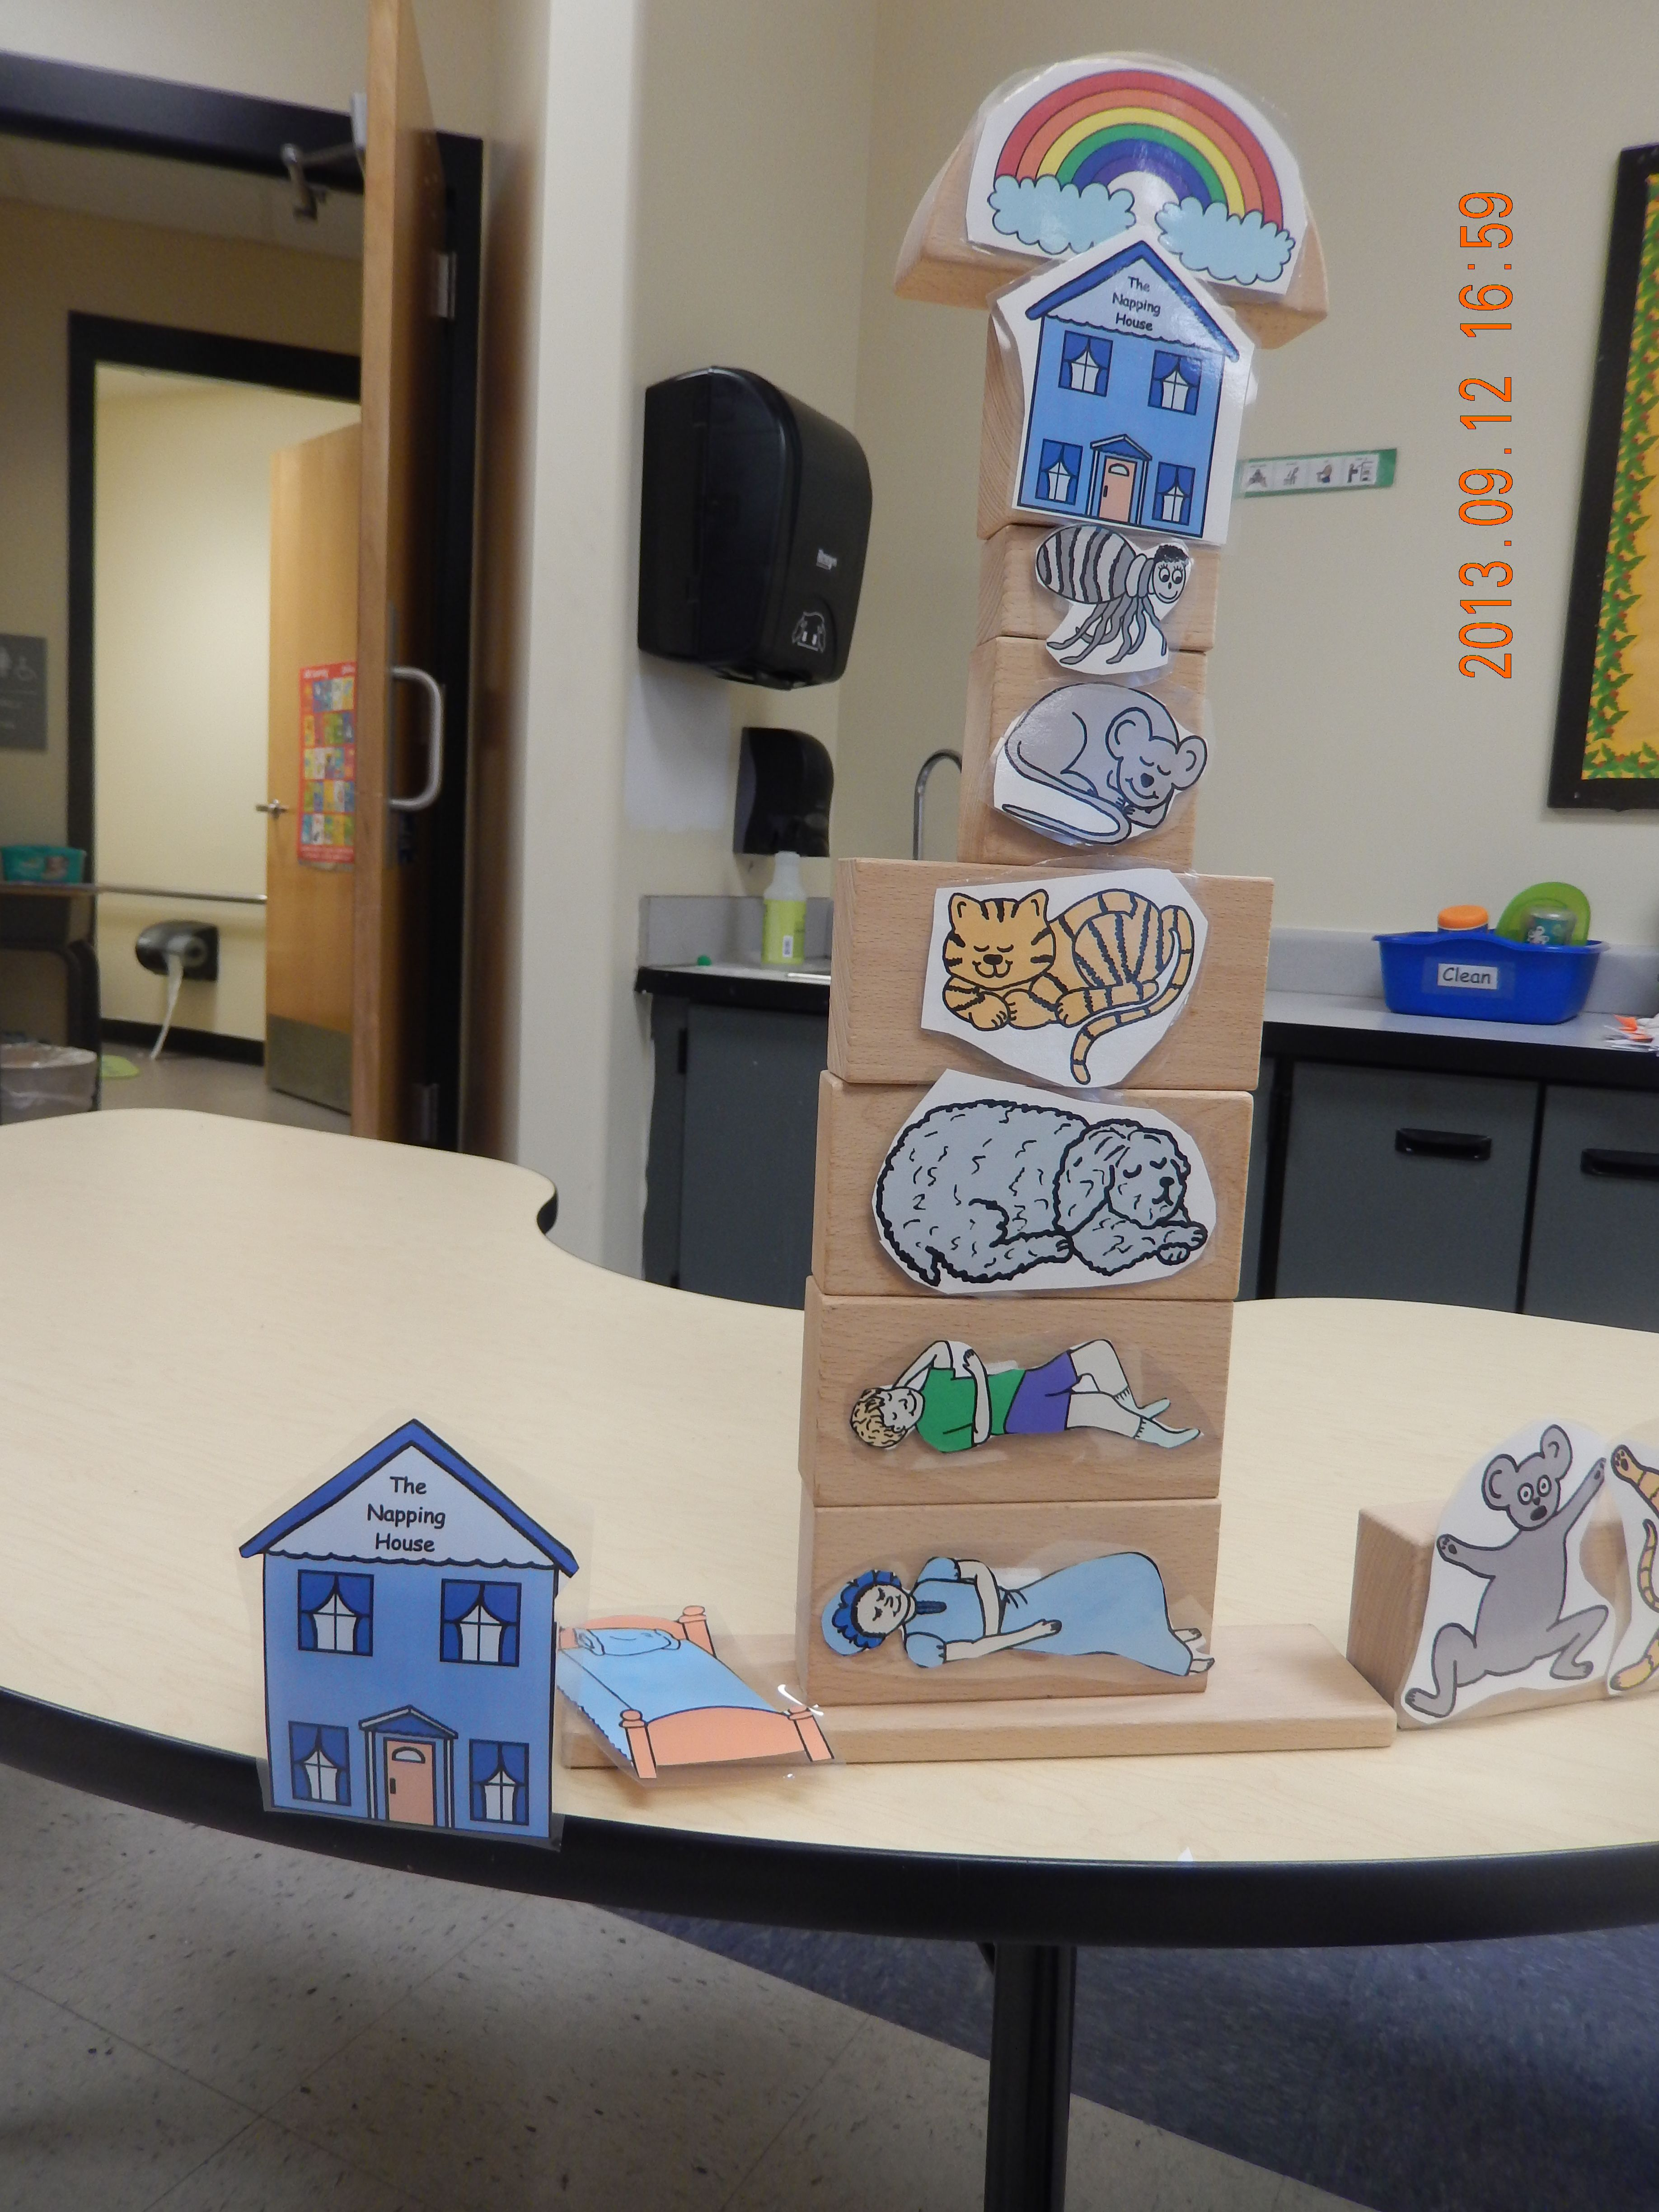 The Napping House On Building Blocks To Help With